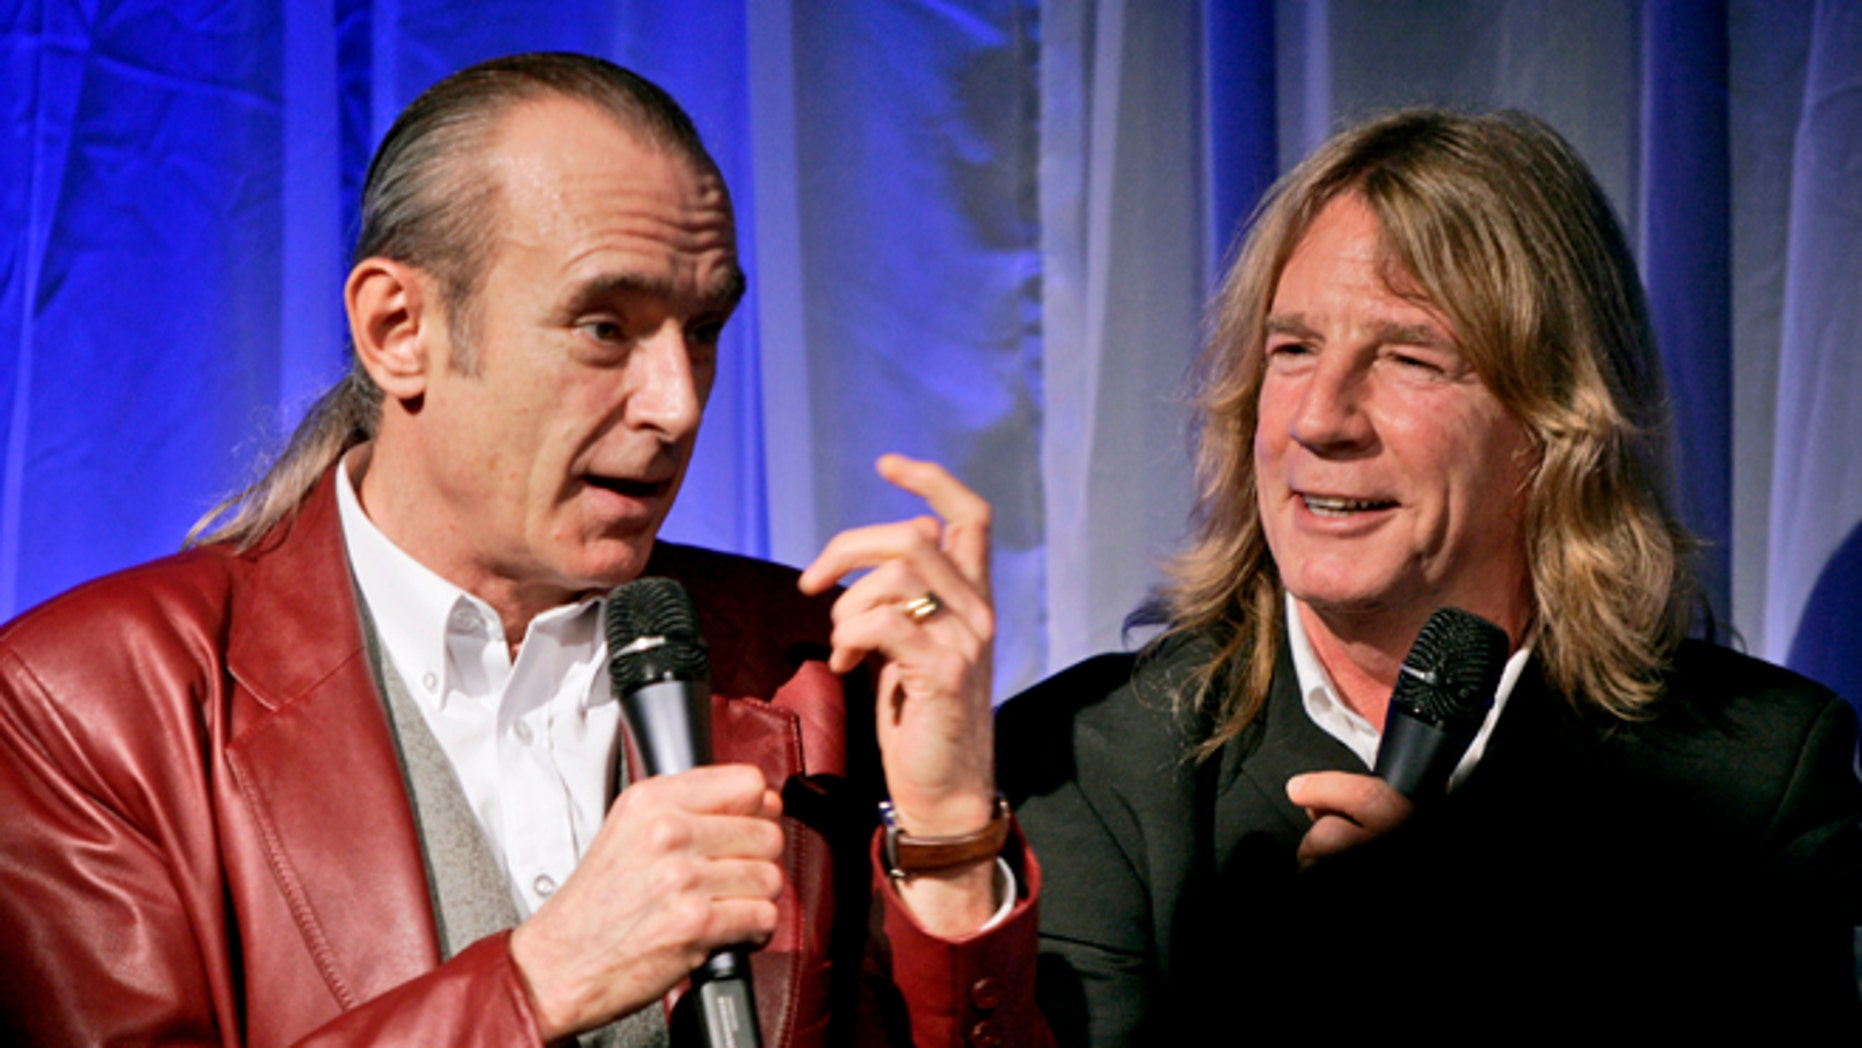 Status Quo members Francis Rossi (left) and Rick Parfitt. Parfitt has died at age 68.